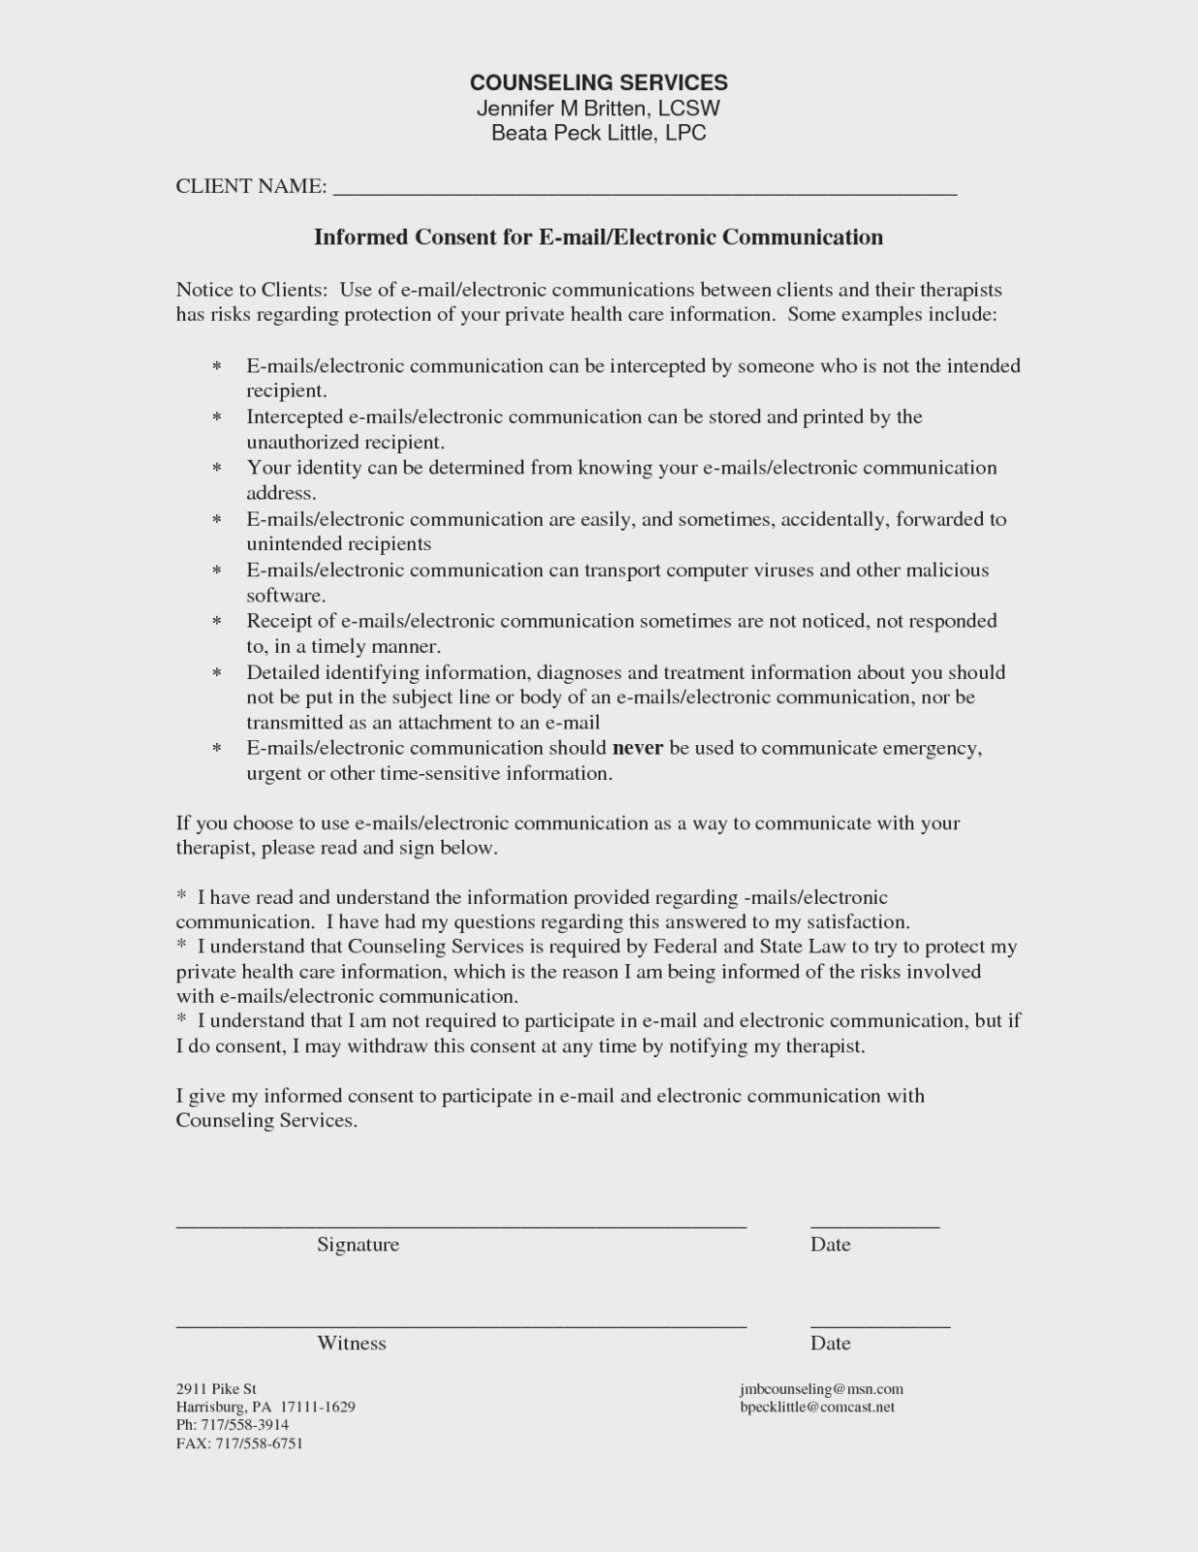 Counseling Consent Form Template